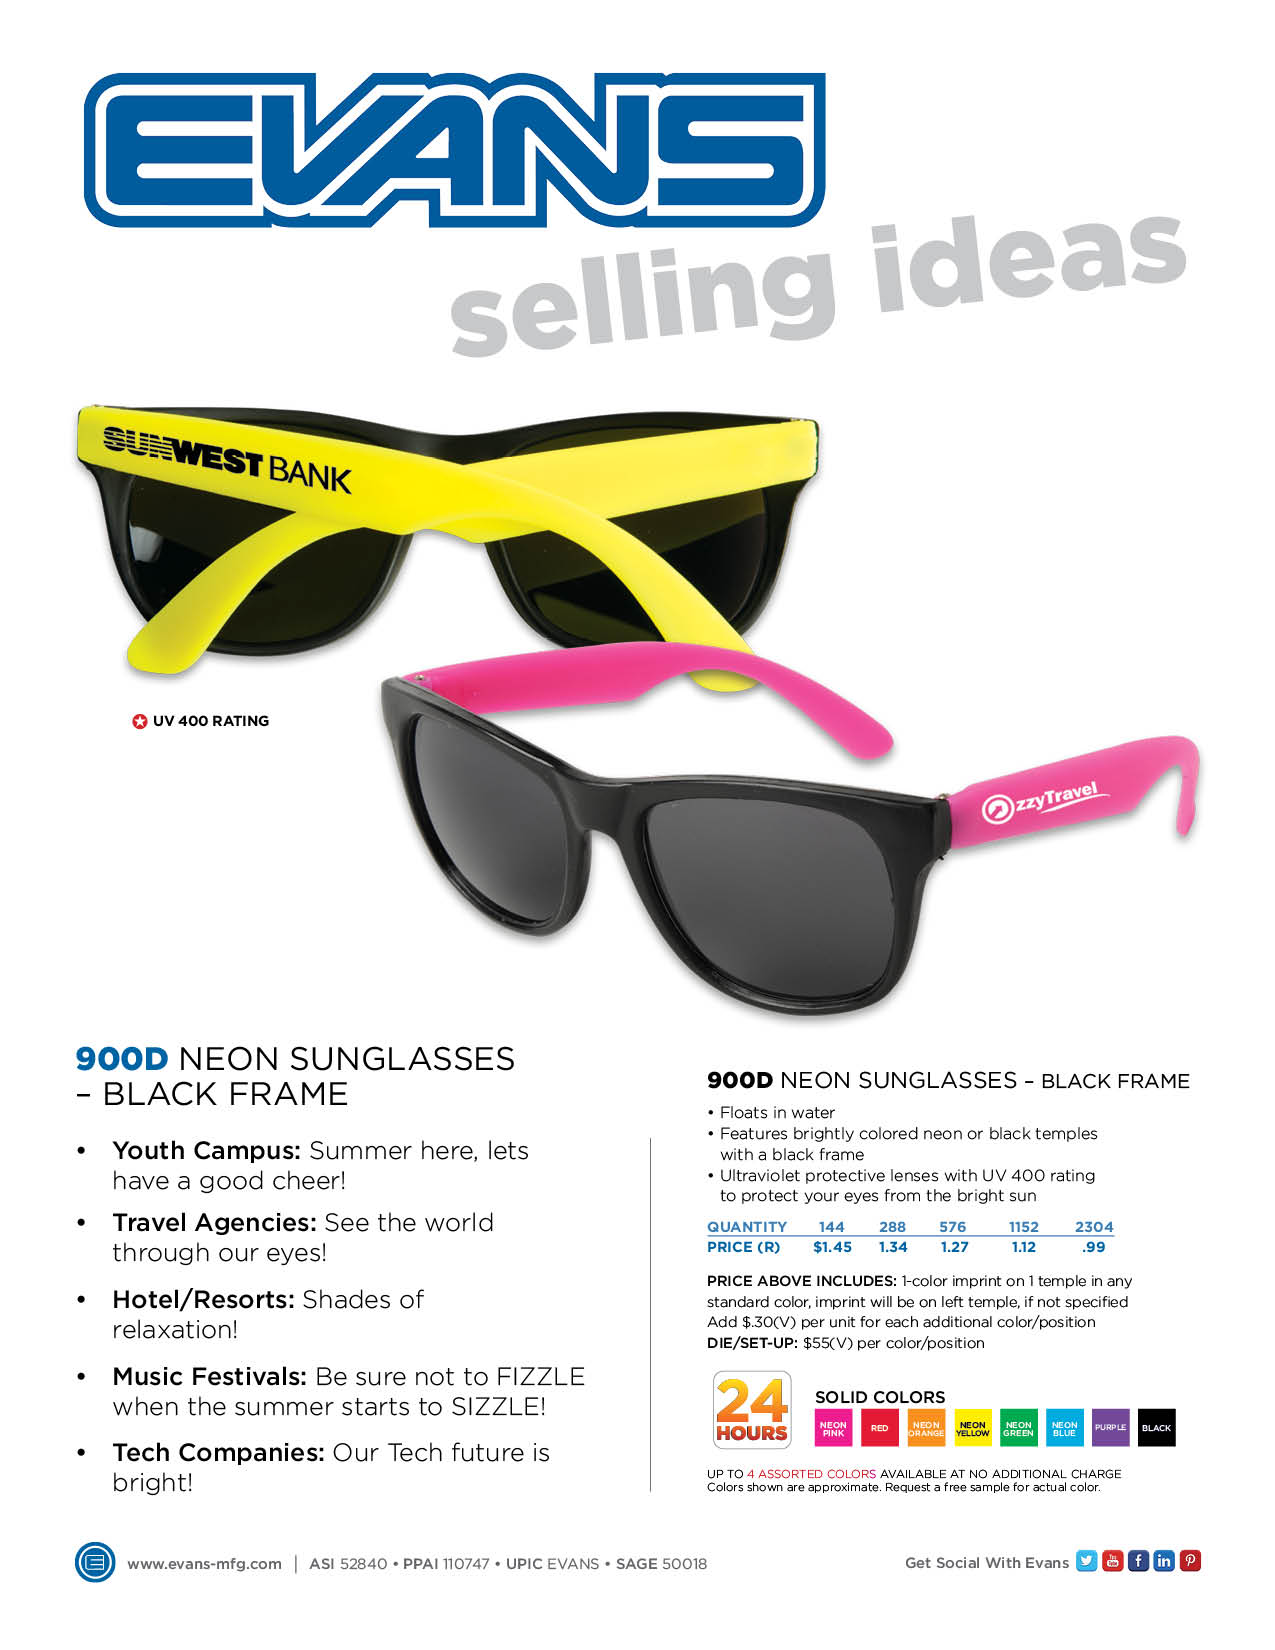 900D Neon Sunglasses - Black Frame